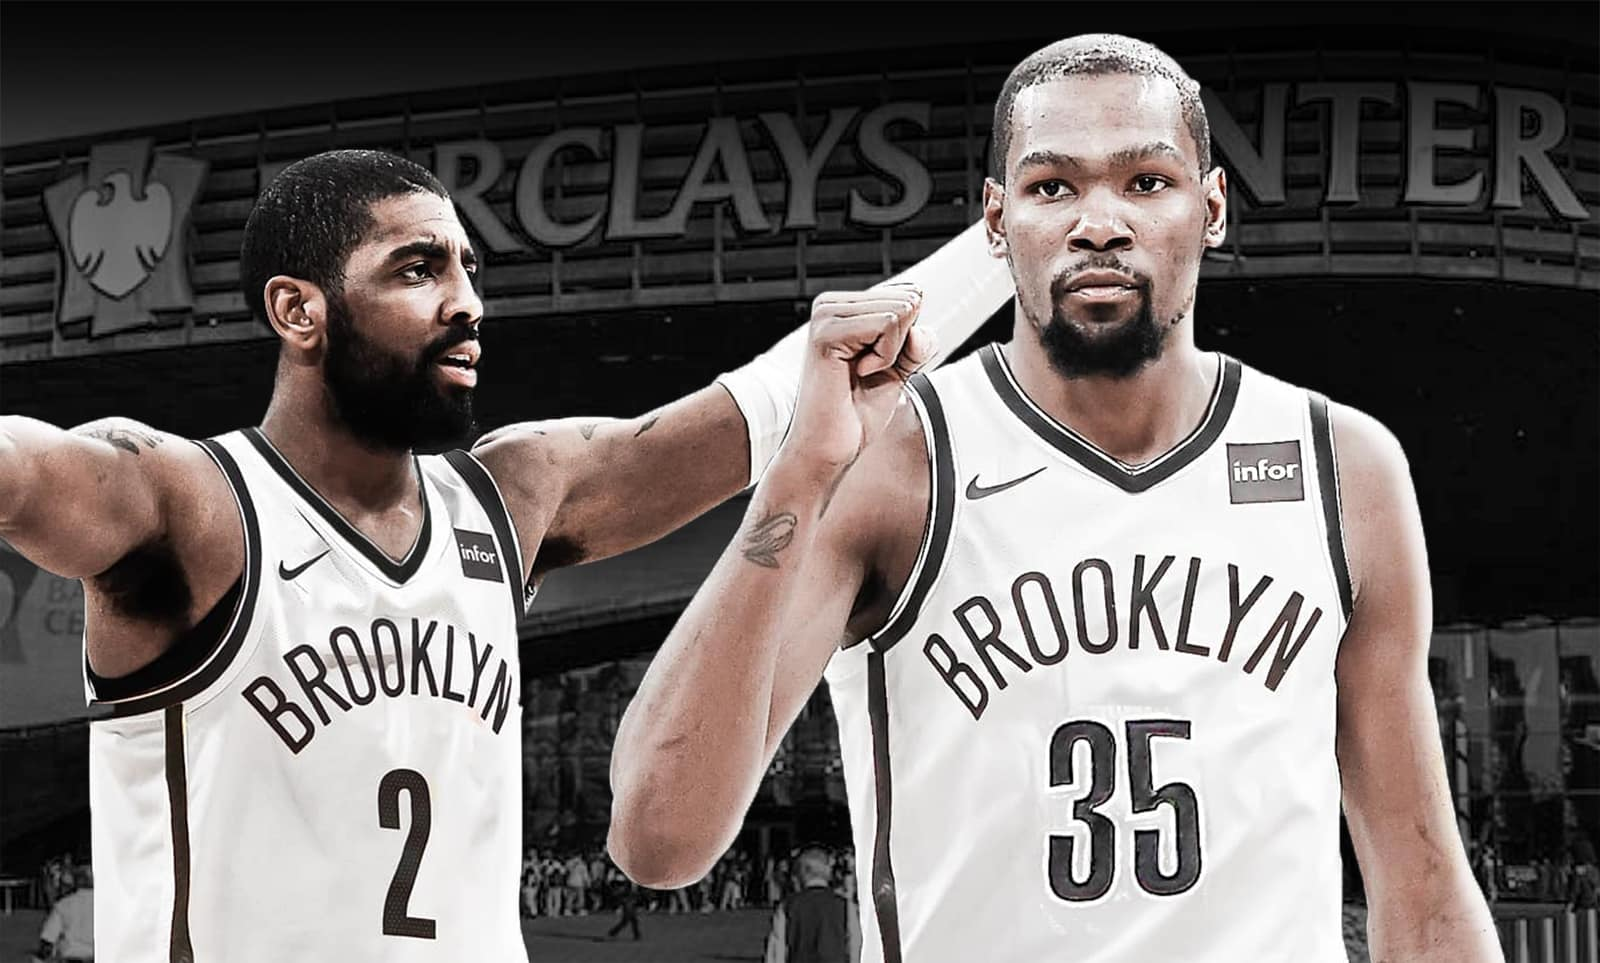 Little brother no more: Kyrie Irving, Kevin Durant are Brooklyn Nets